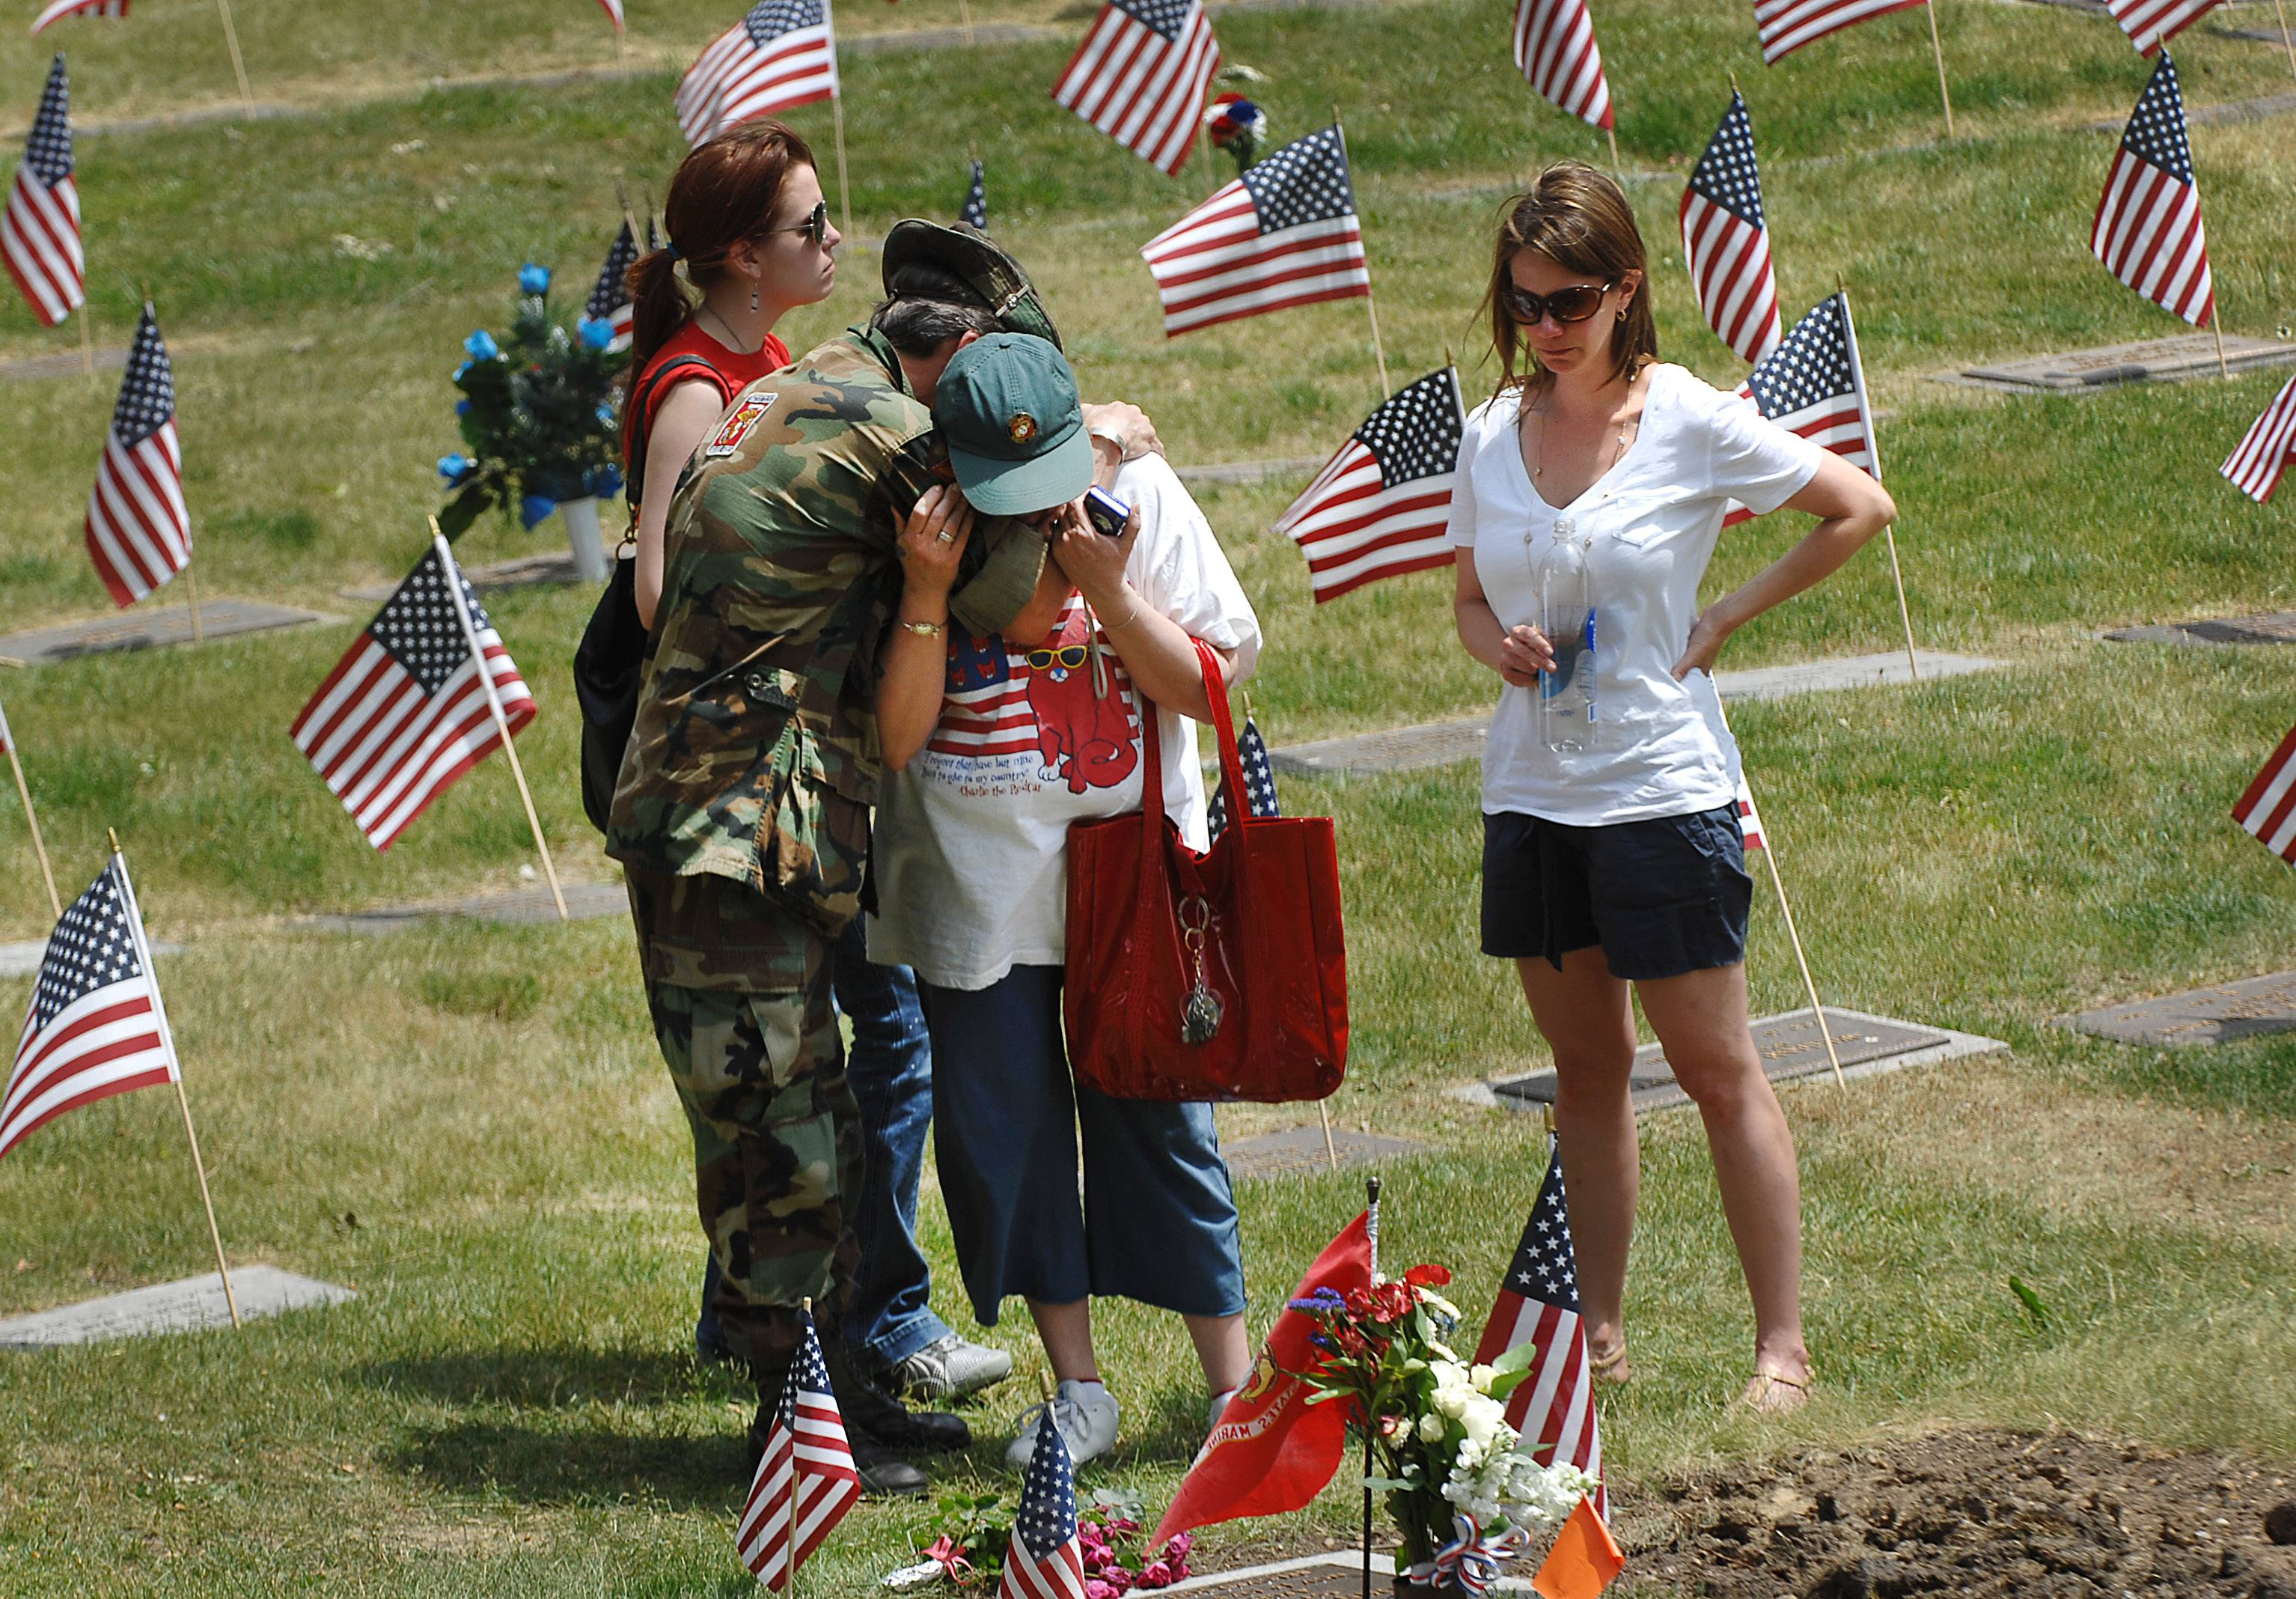 James Corcoran hugs his wife Gayle as they stand at their son John's grave Monday at the Bluff City Cemetery following the Memorial Day service in Elgin. The 33-year-old Corcoran served in the Marine Corps for eight years in Iraq, Afghanistan, Somalia and several other conflicts. He suffered from Post Traumatic Stress Disorder and killed himself last year after returning to Elgin. His sisters Caroline and LIsa, right, stand with the family. James served in Vietnam during the war.